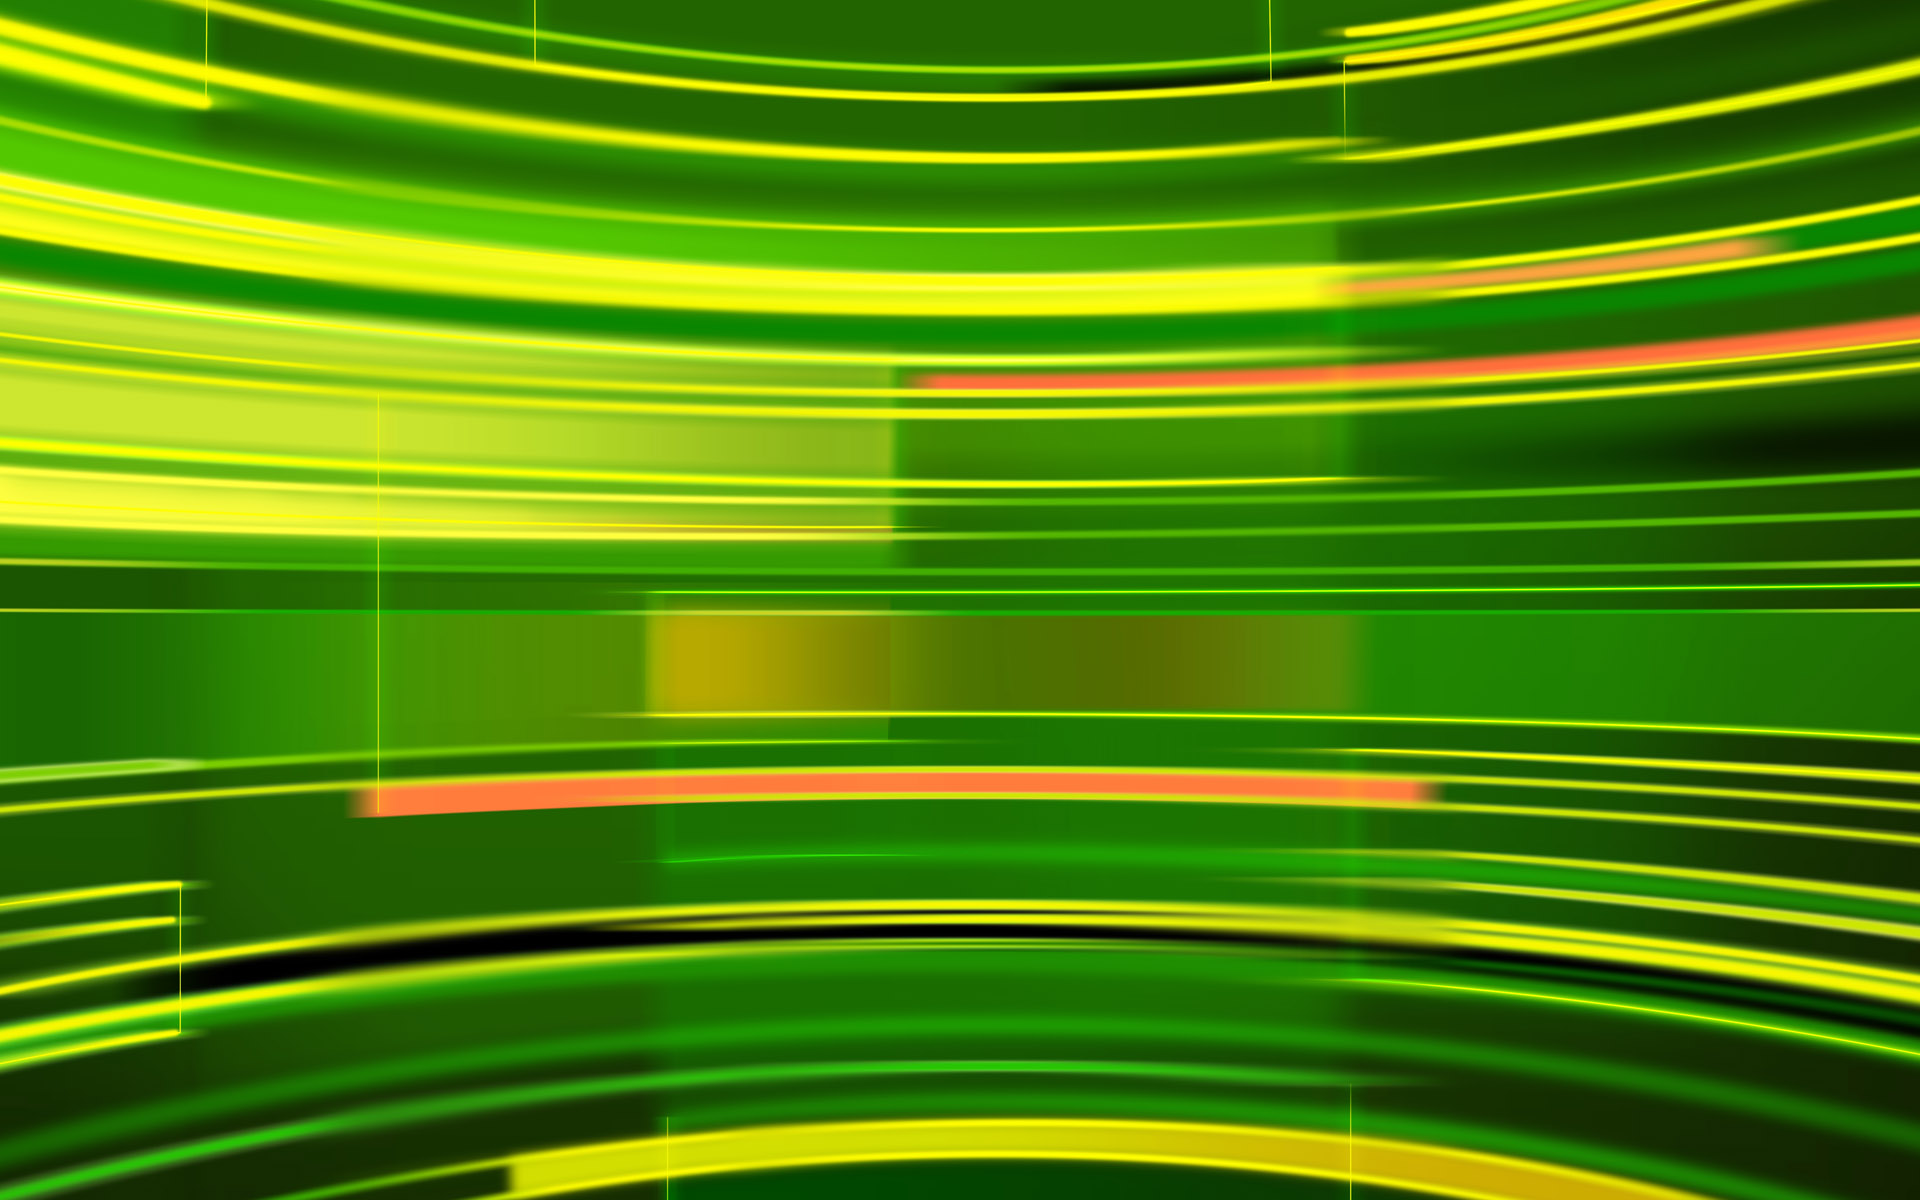 Colorful background of high-definition 20558